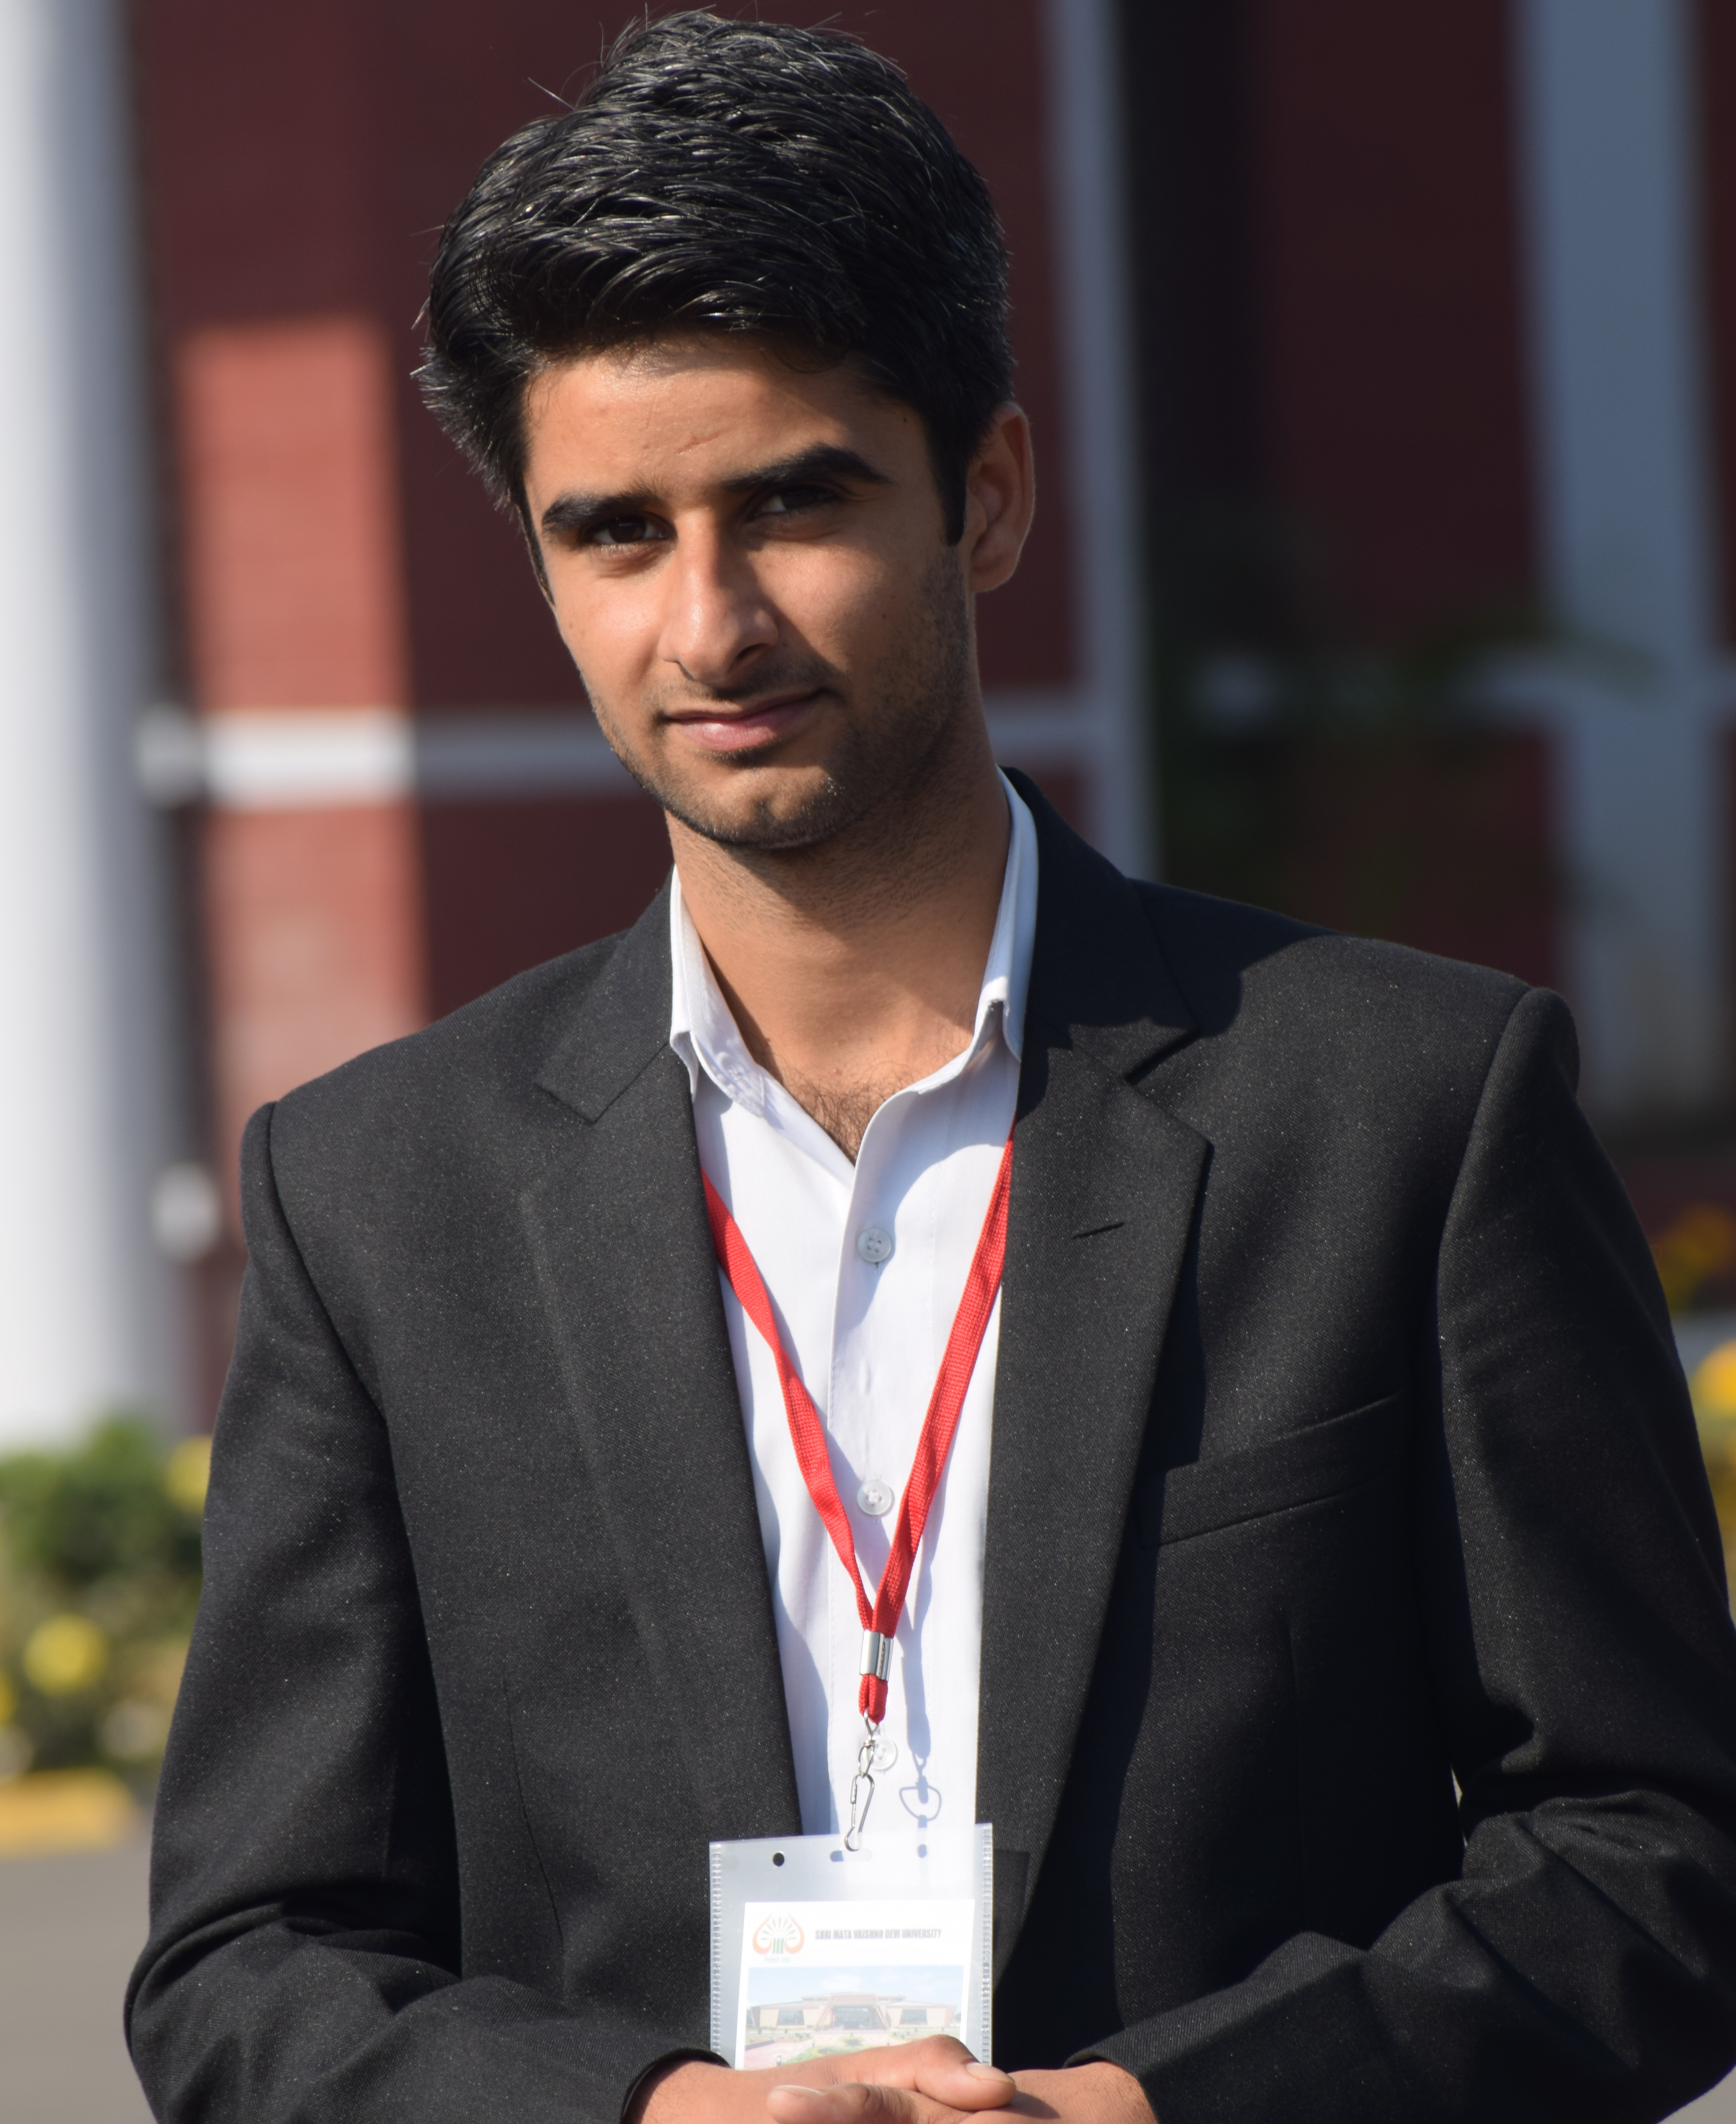 International Youth Journal Author Haamid Ali Shah